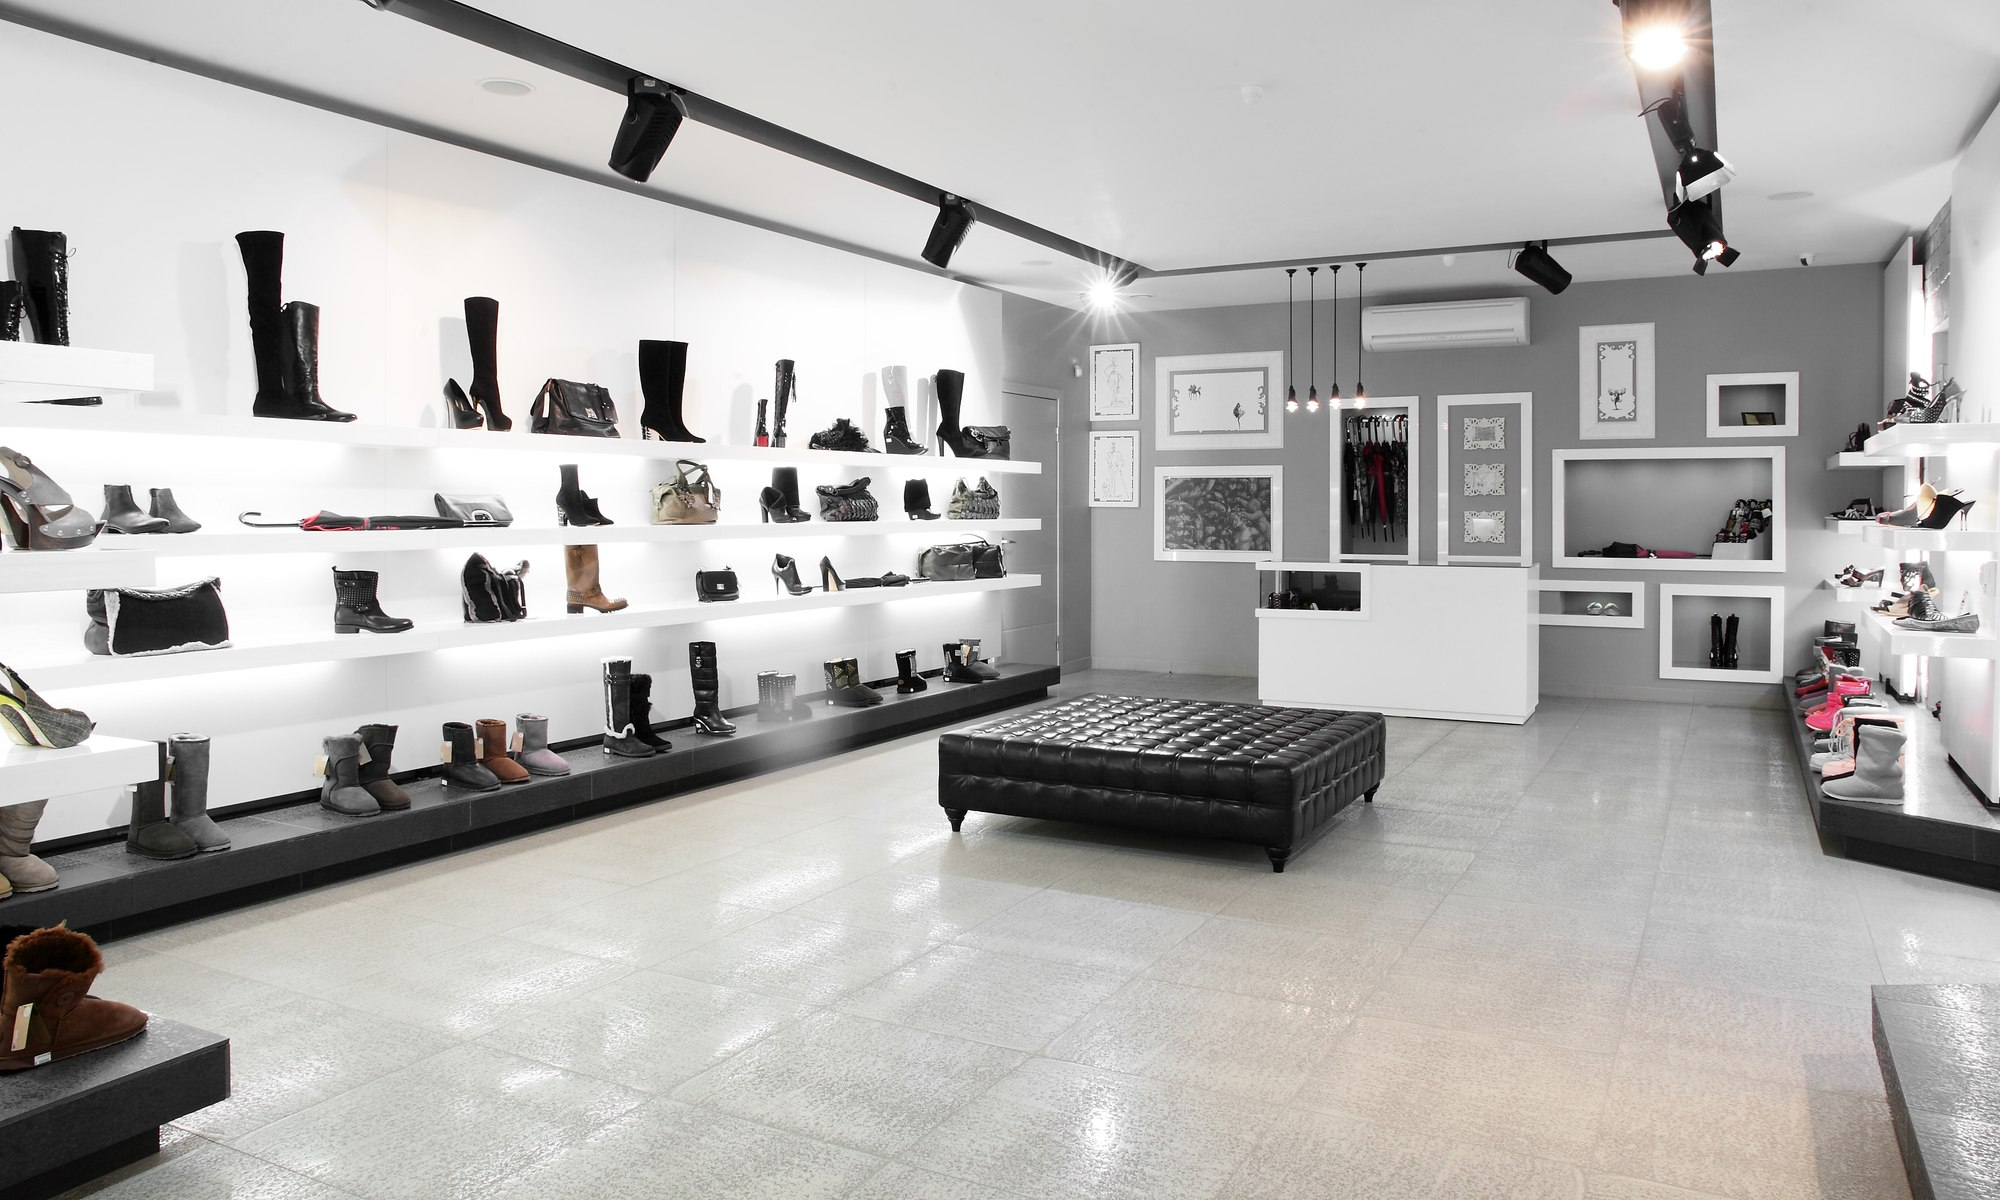 Why Direct to Consumer Brands are Beginning to Build Brick and Mortar Stores